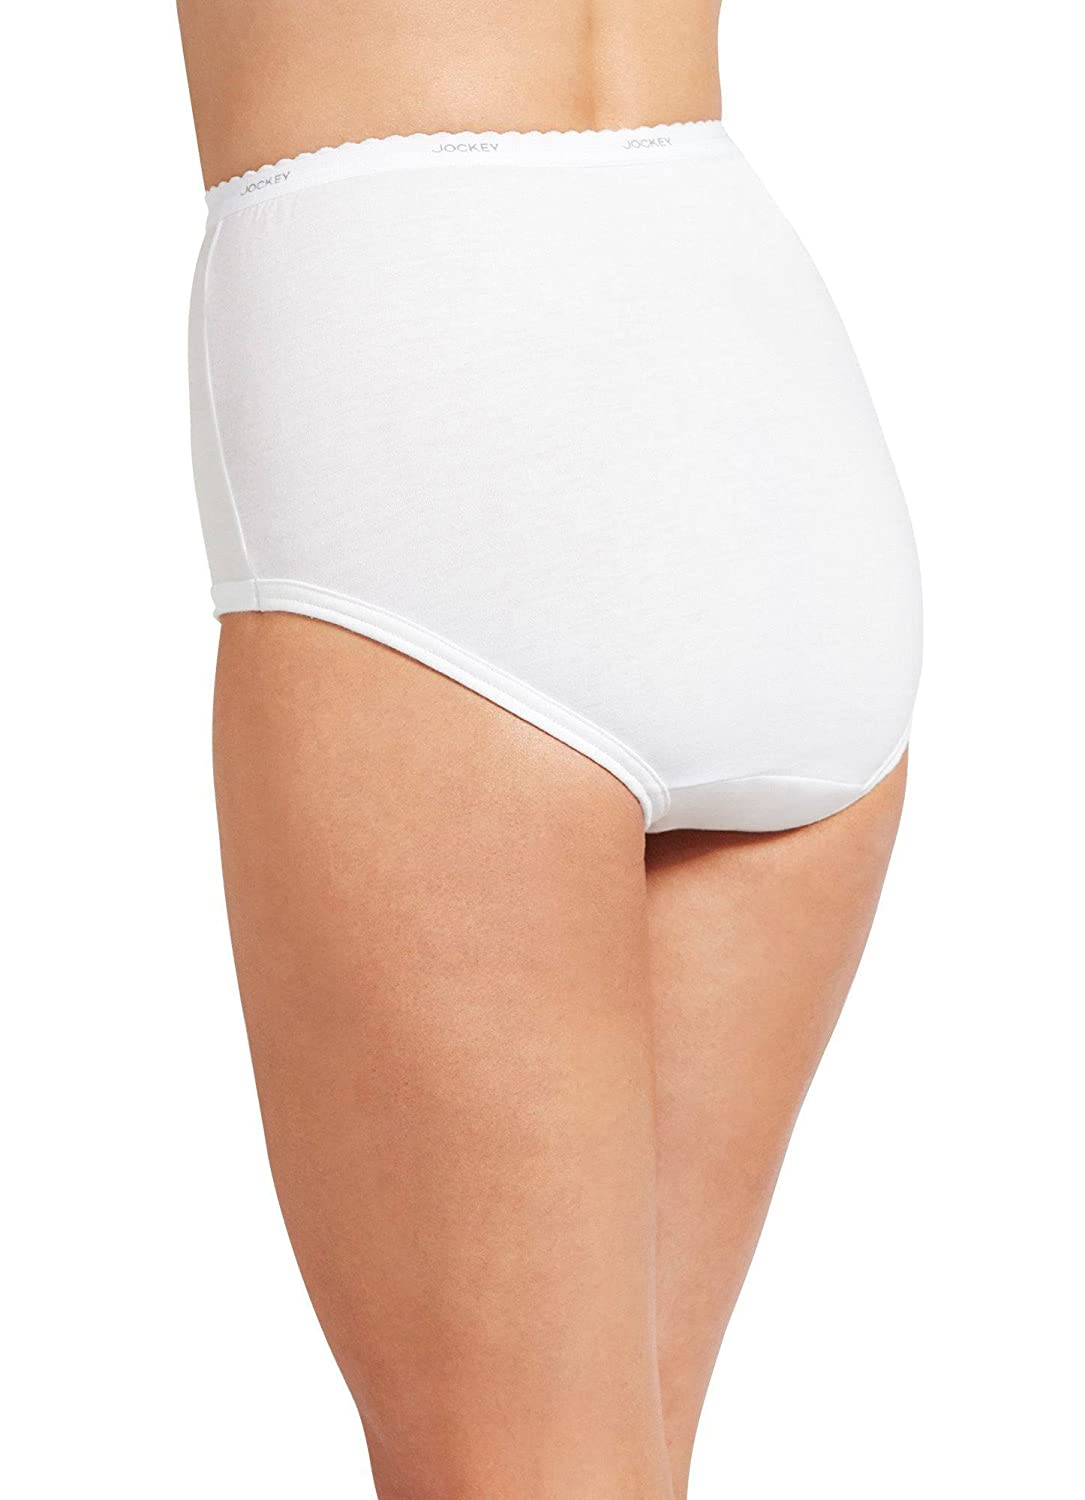 variousstyles sells top-rated discount Jockey Women's Underwear Classic Brief - 6 Pack